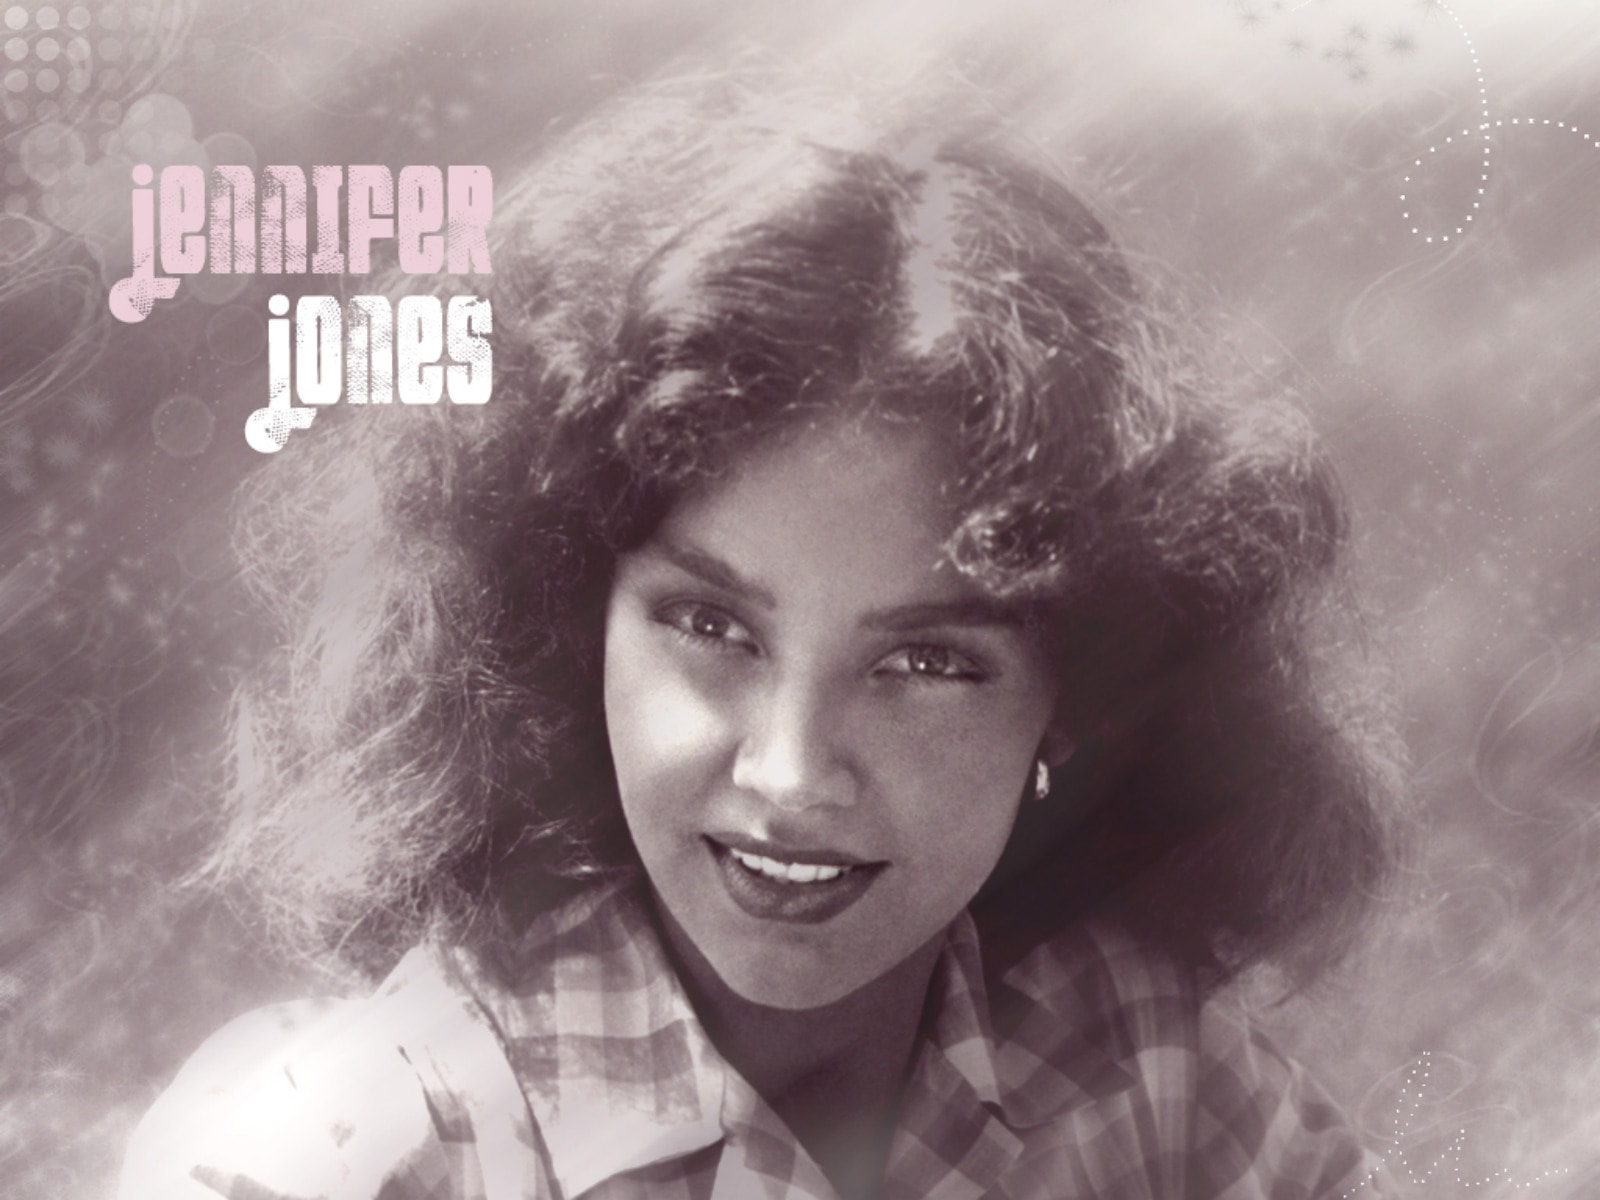 Jennifer Jones HQ wallpapers